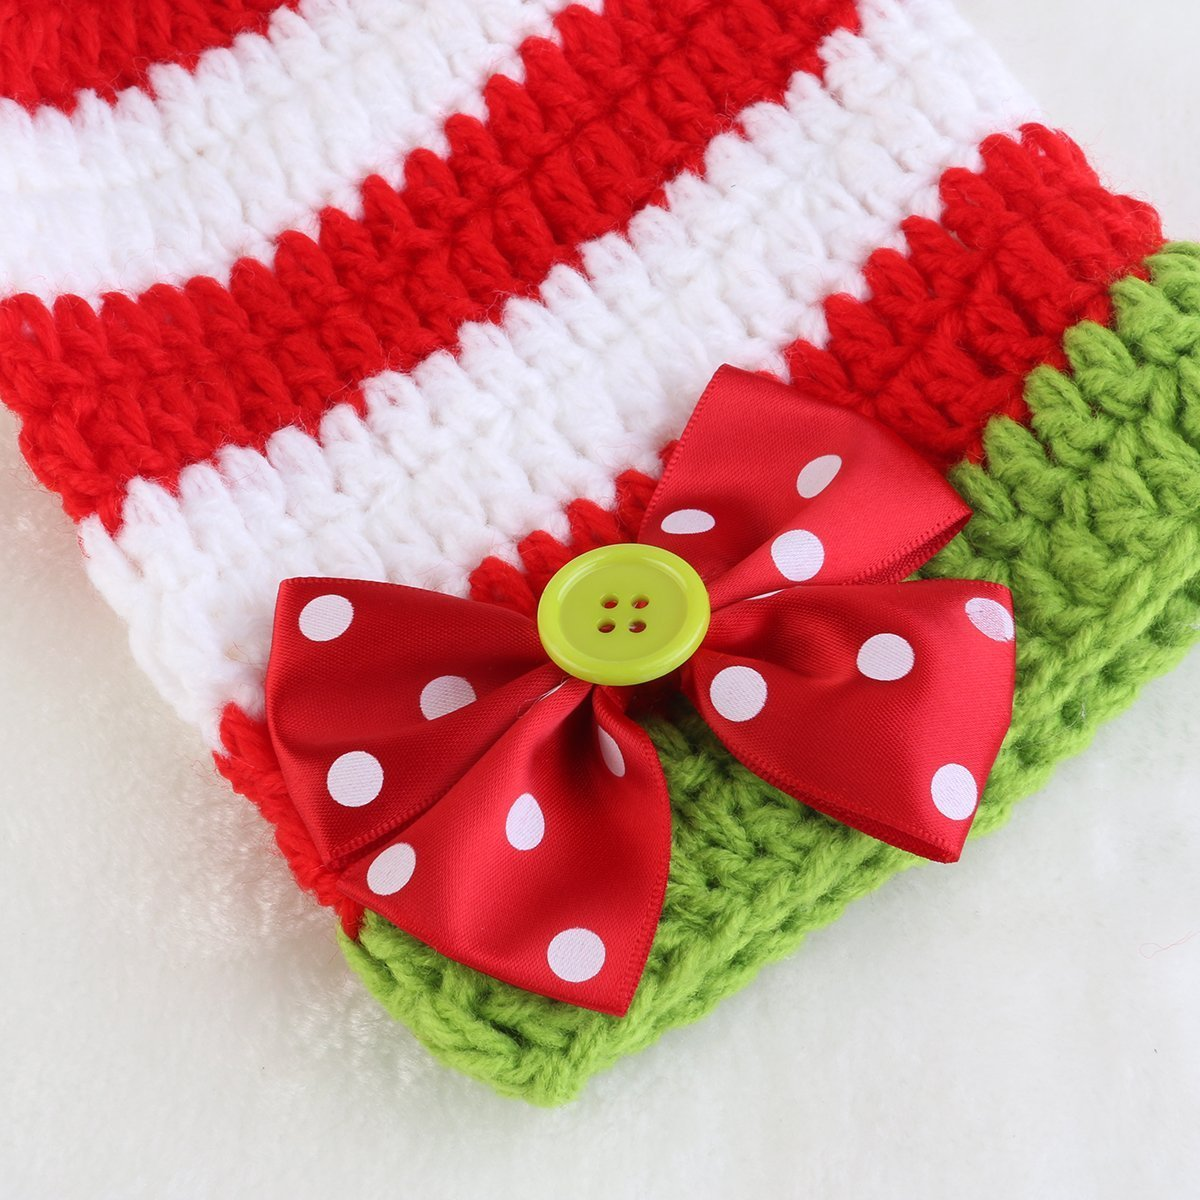 Rhumen Baby Photography Prop Christmas Baby Newborn Handmade Clothes by Rhumen (Image #2)